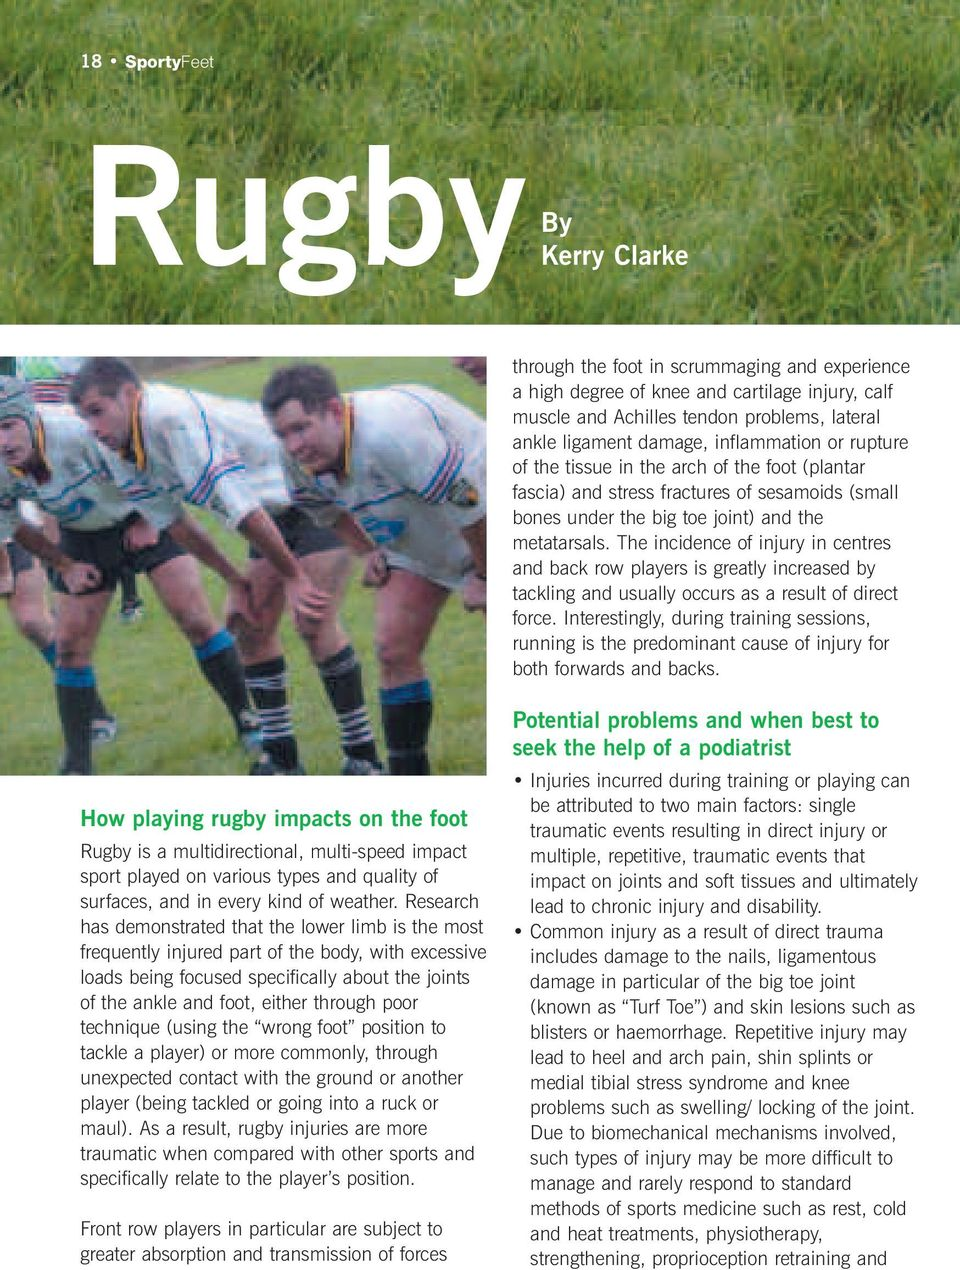 The incidence of injury in centres and back row players is greatly increased by tackling and usually occurs as a result of direct force.